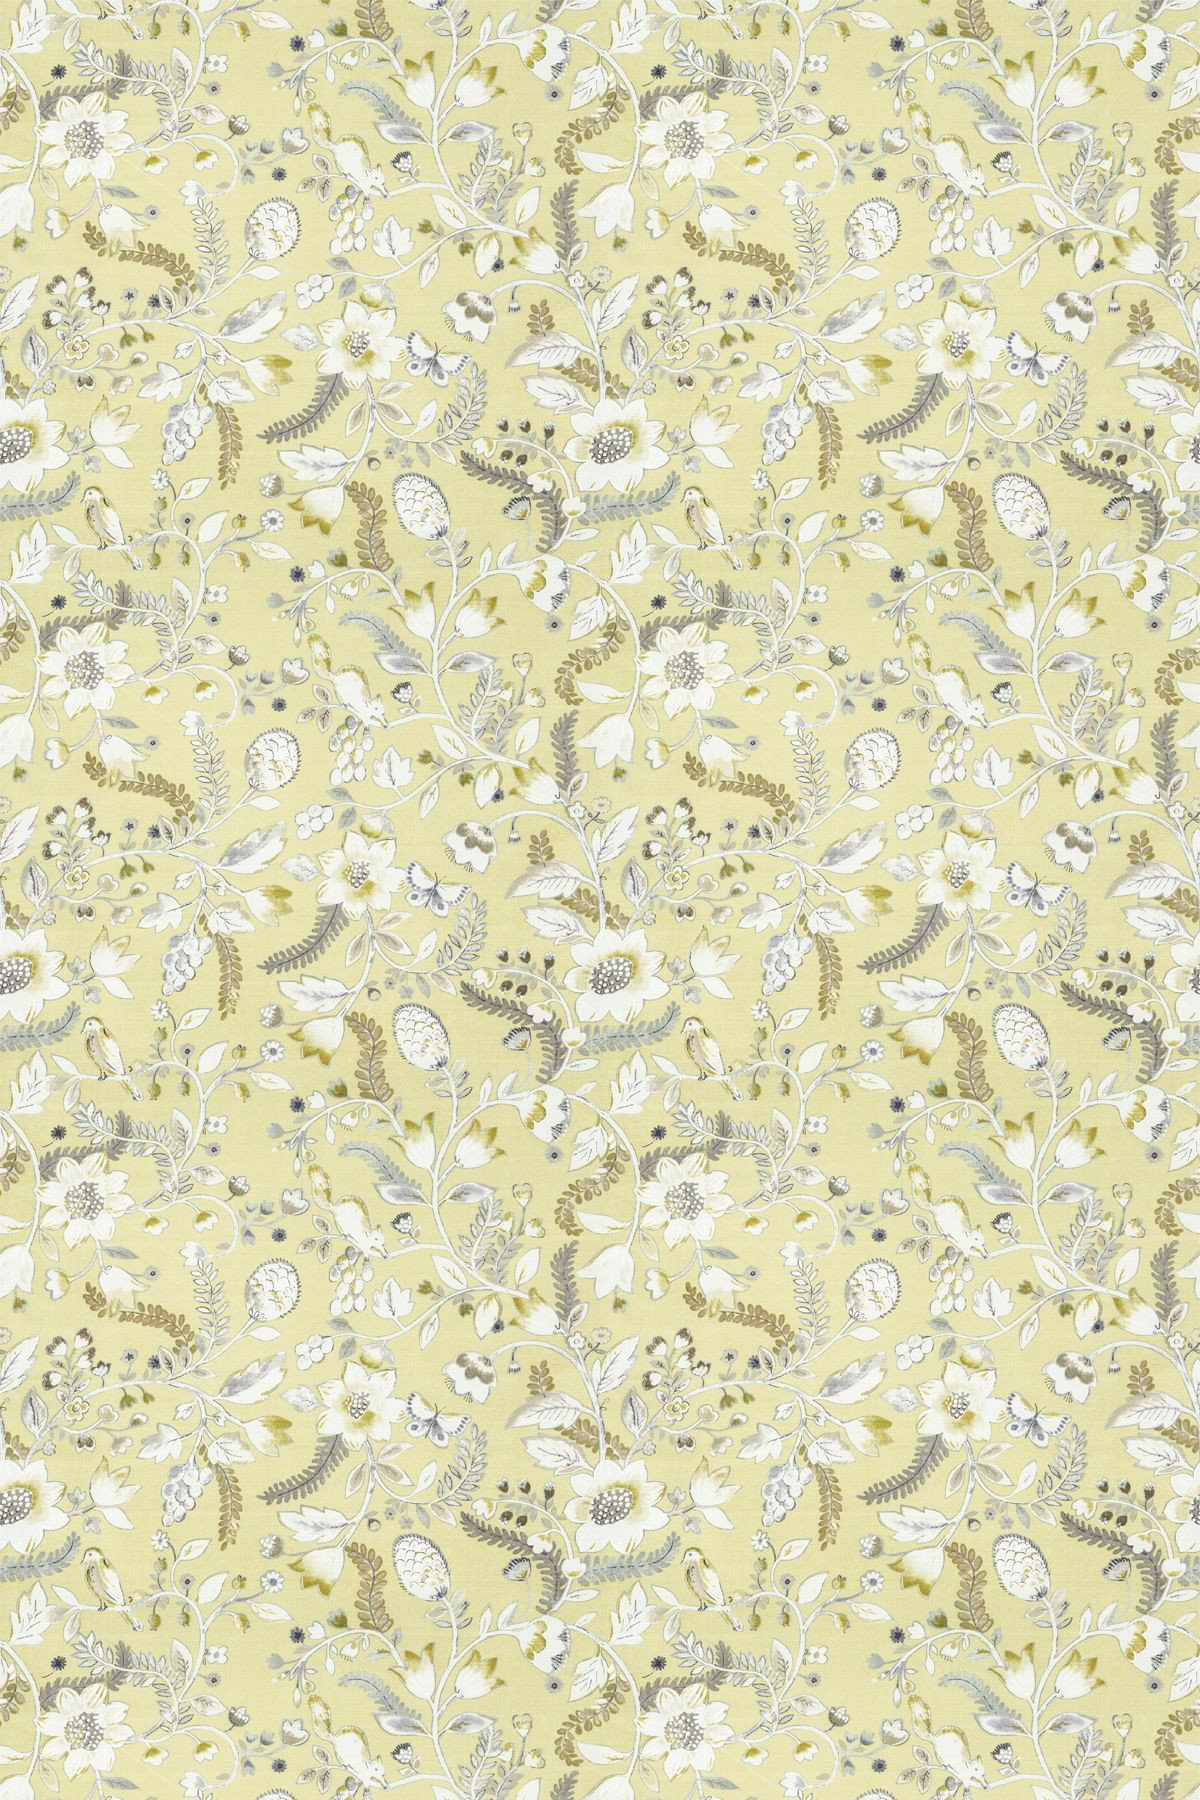 Image of Blendworth Fabric Daydreamer, Daydream/003